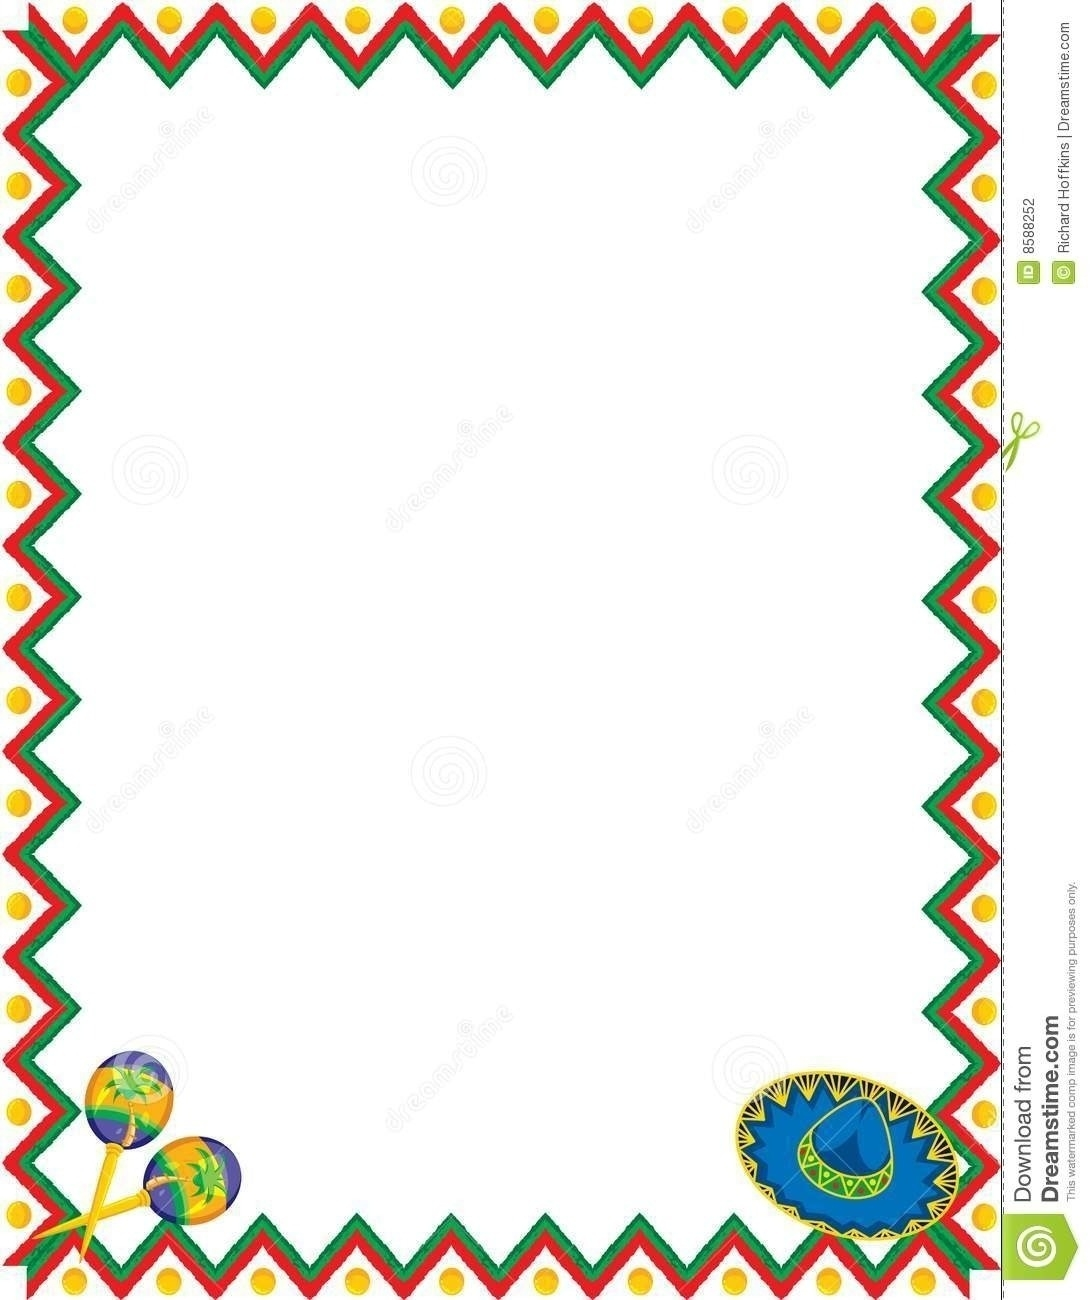 Mexican fiesta border clipart transparent stock Mexican Menu Border Design | Writings and Essays Corner transparent stock